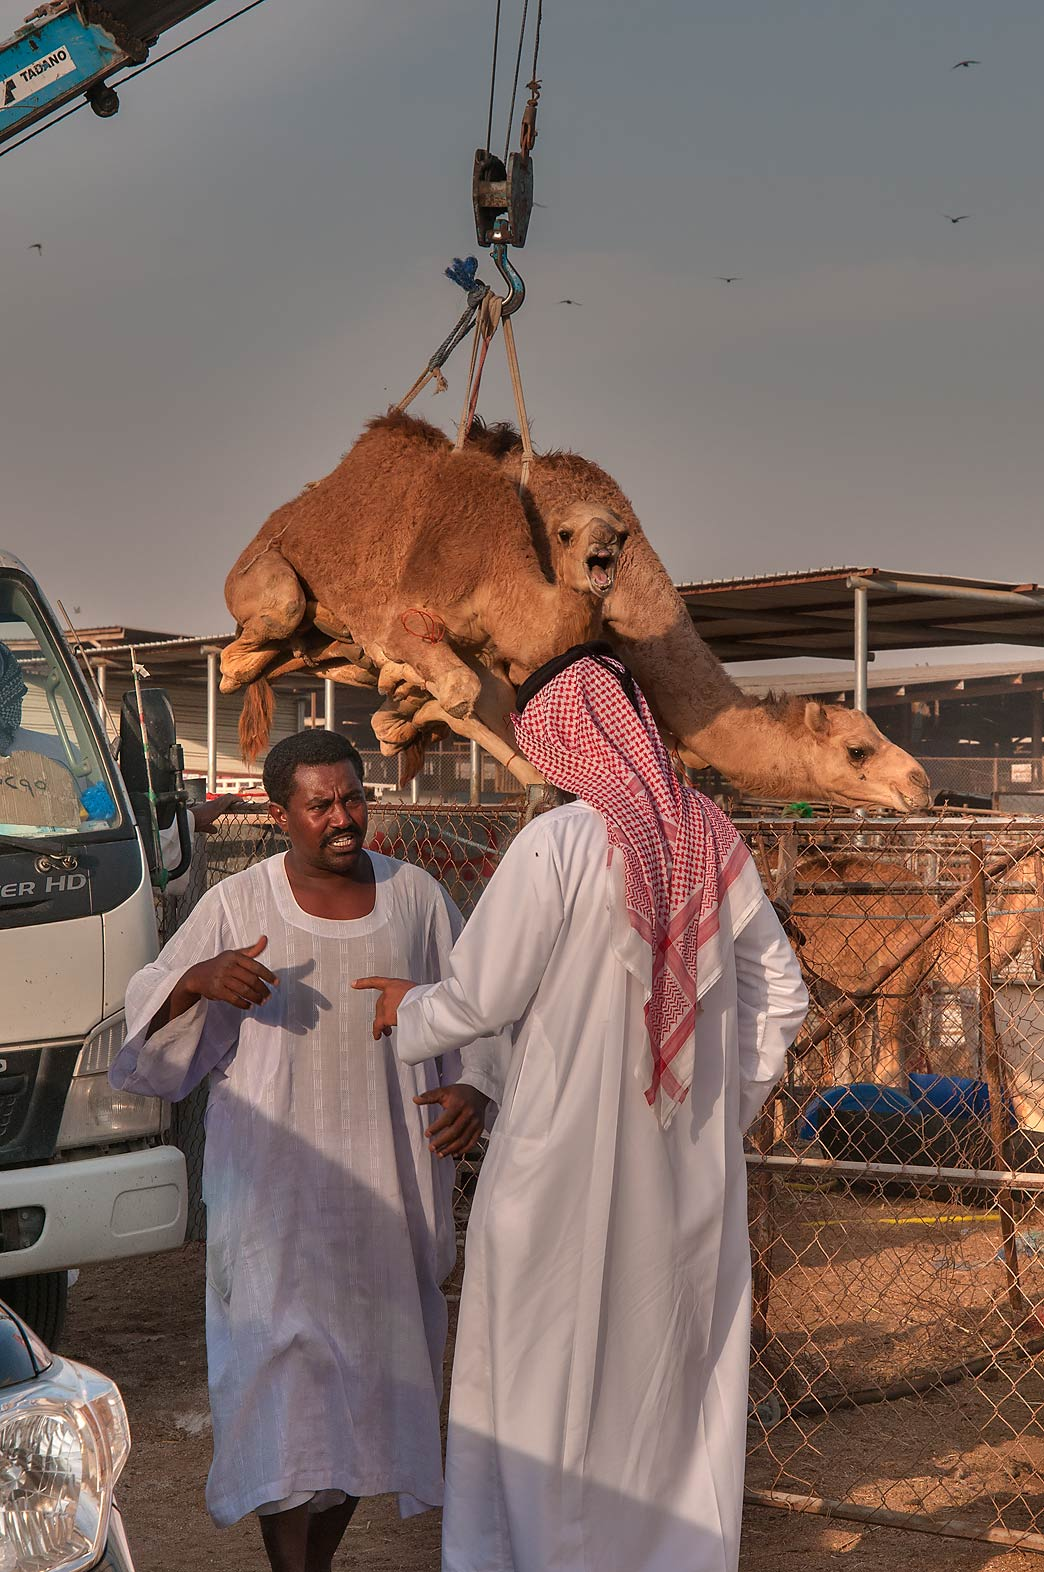 Shopping for camels in Livestock Market, Wholesale Markets area. Doha, Qatar